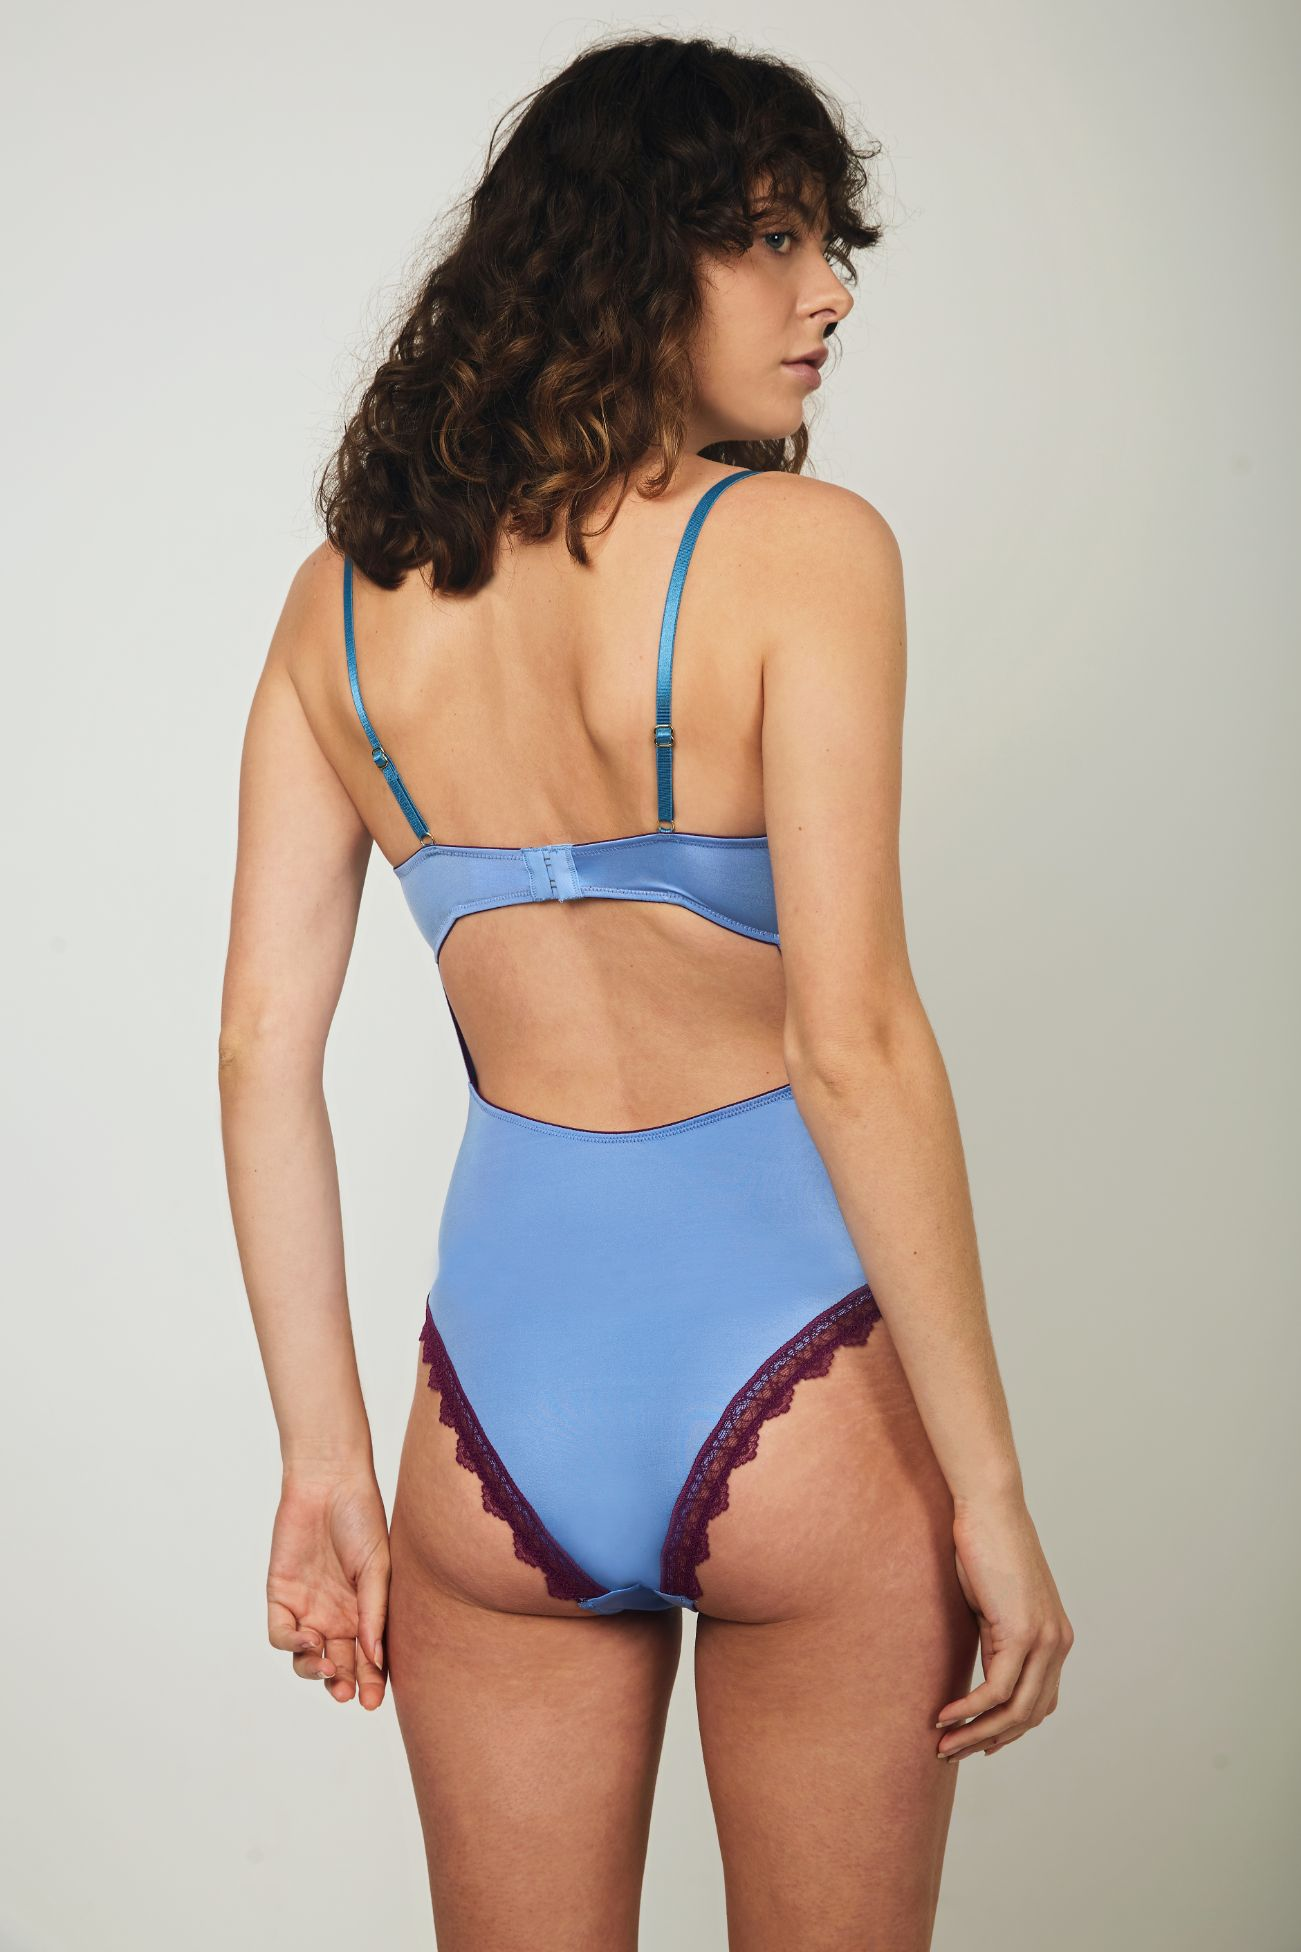 Paige Silky Underwired Body - Dora Larsen | Colourful Lingerie